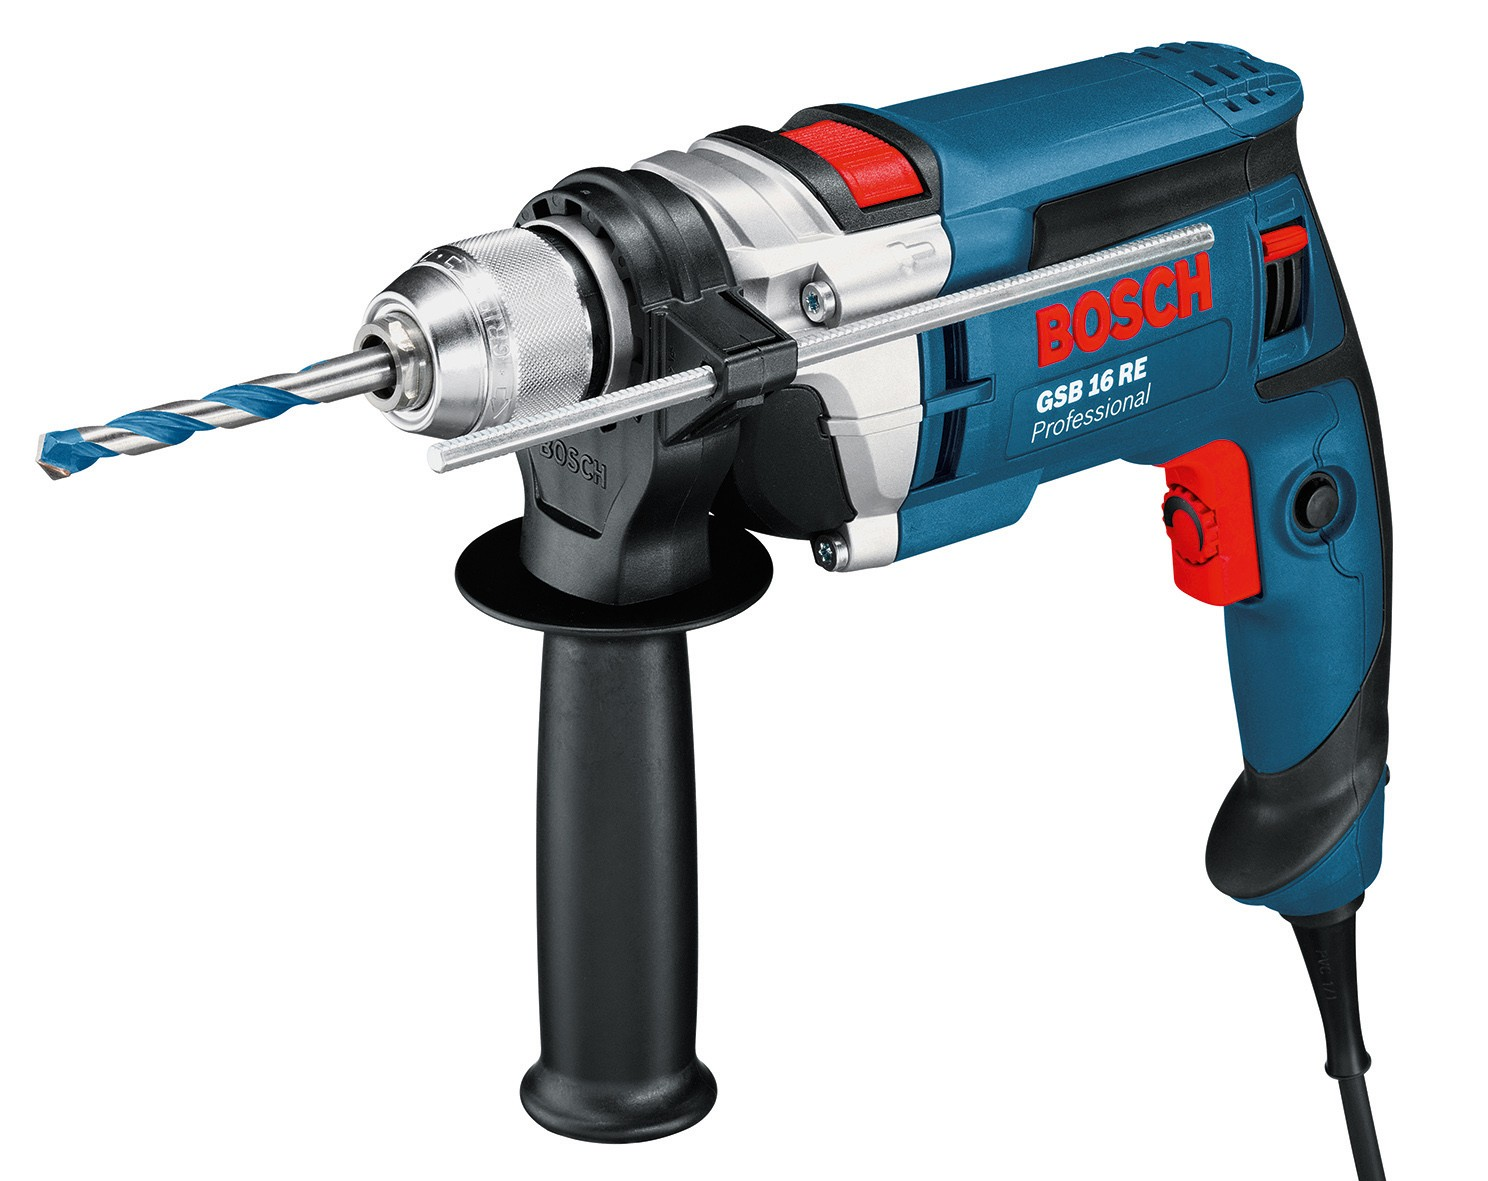 bosch gsb 16 re 240v percussion drill 13mm keyless chuck howe tools uk. Black Bedroom Furniture Sets. Home Design Ideas